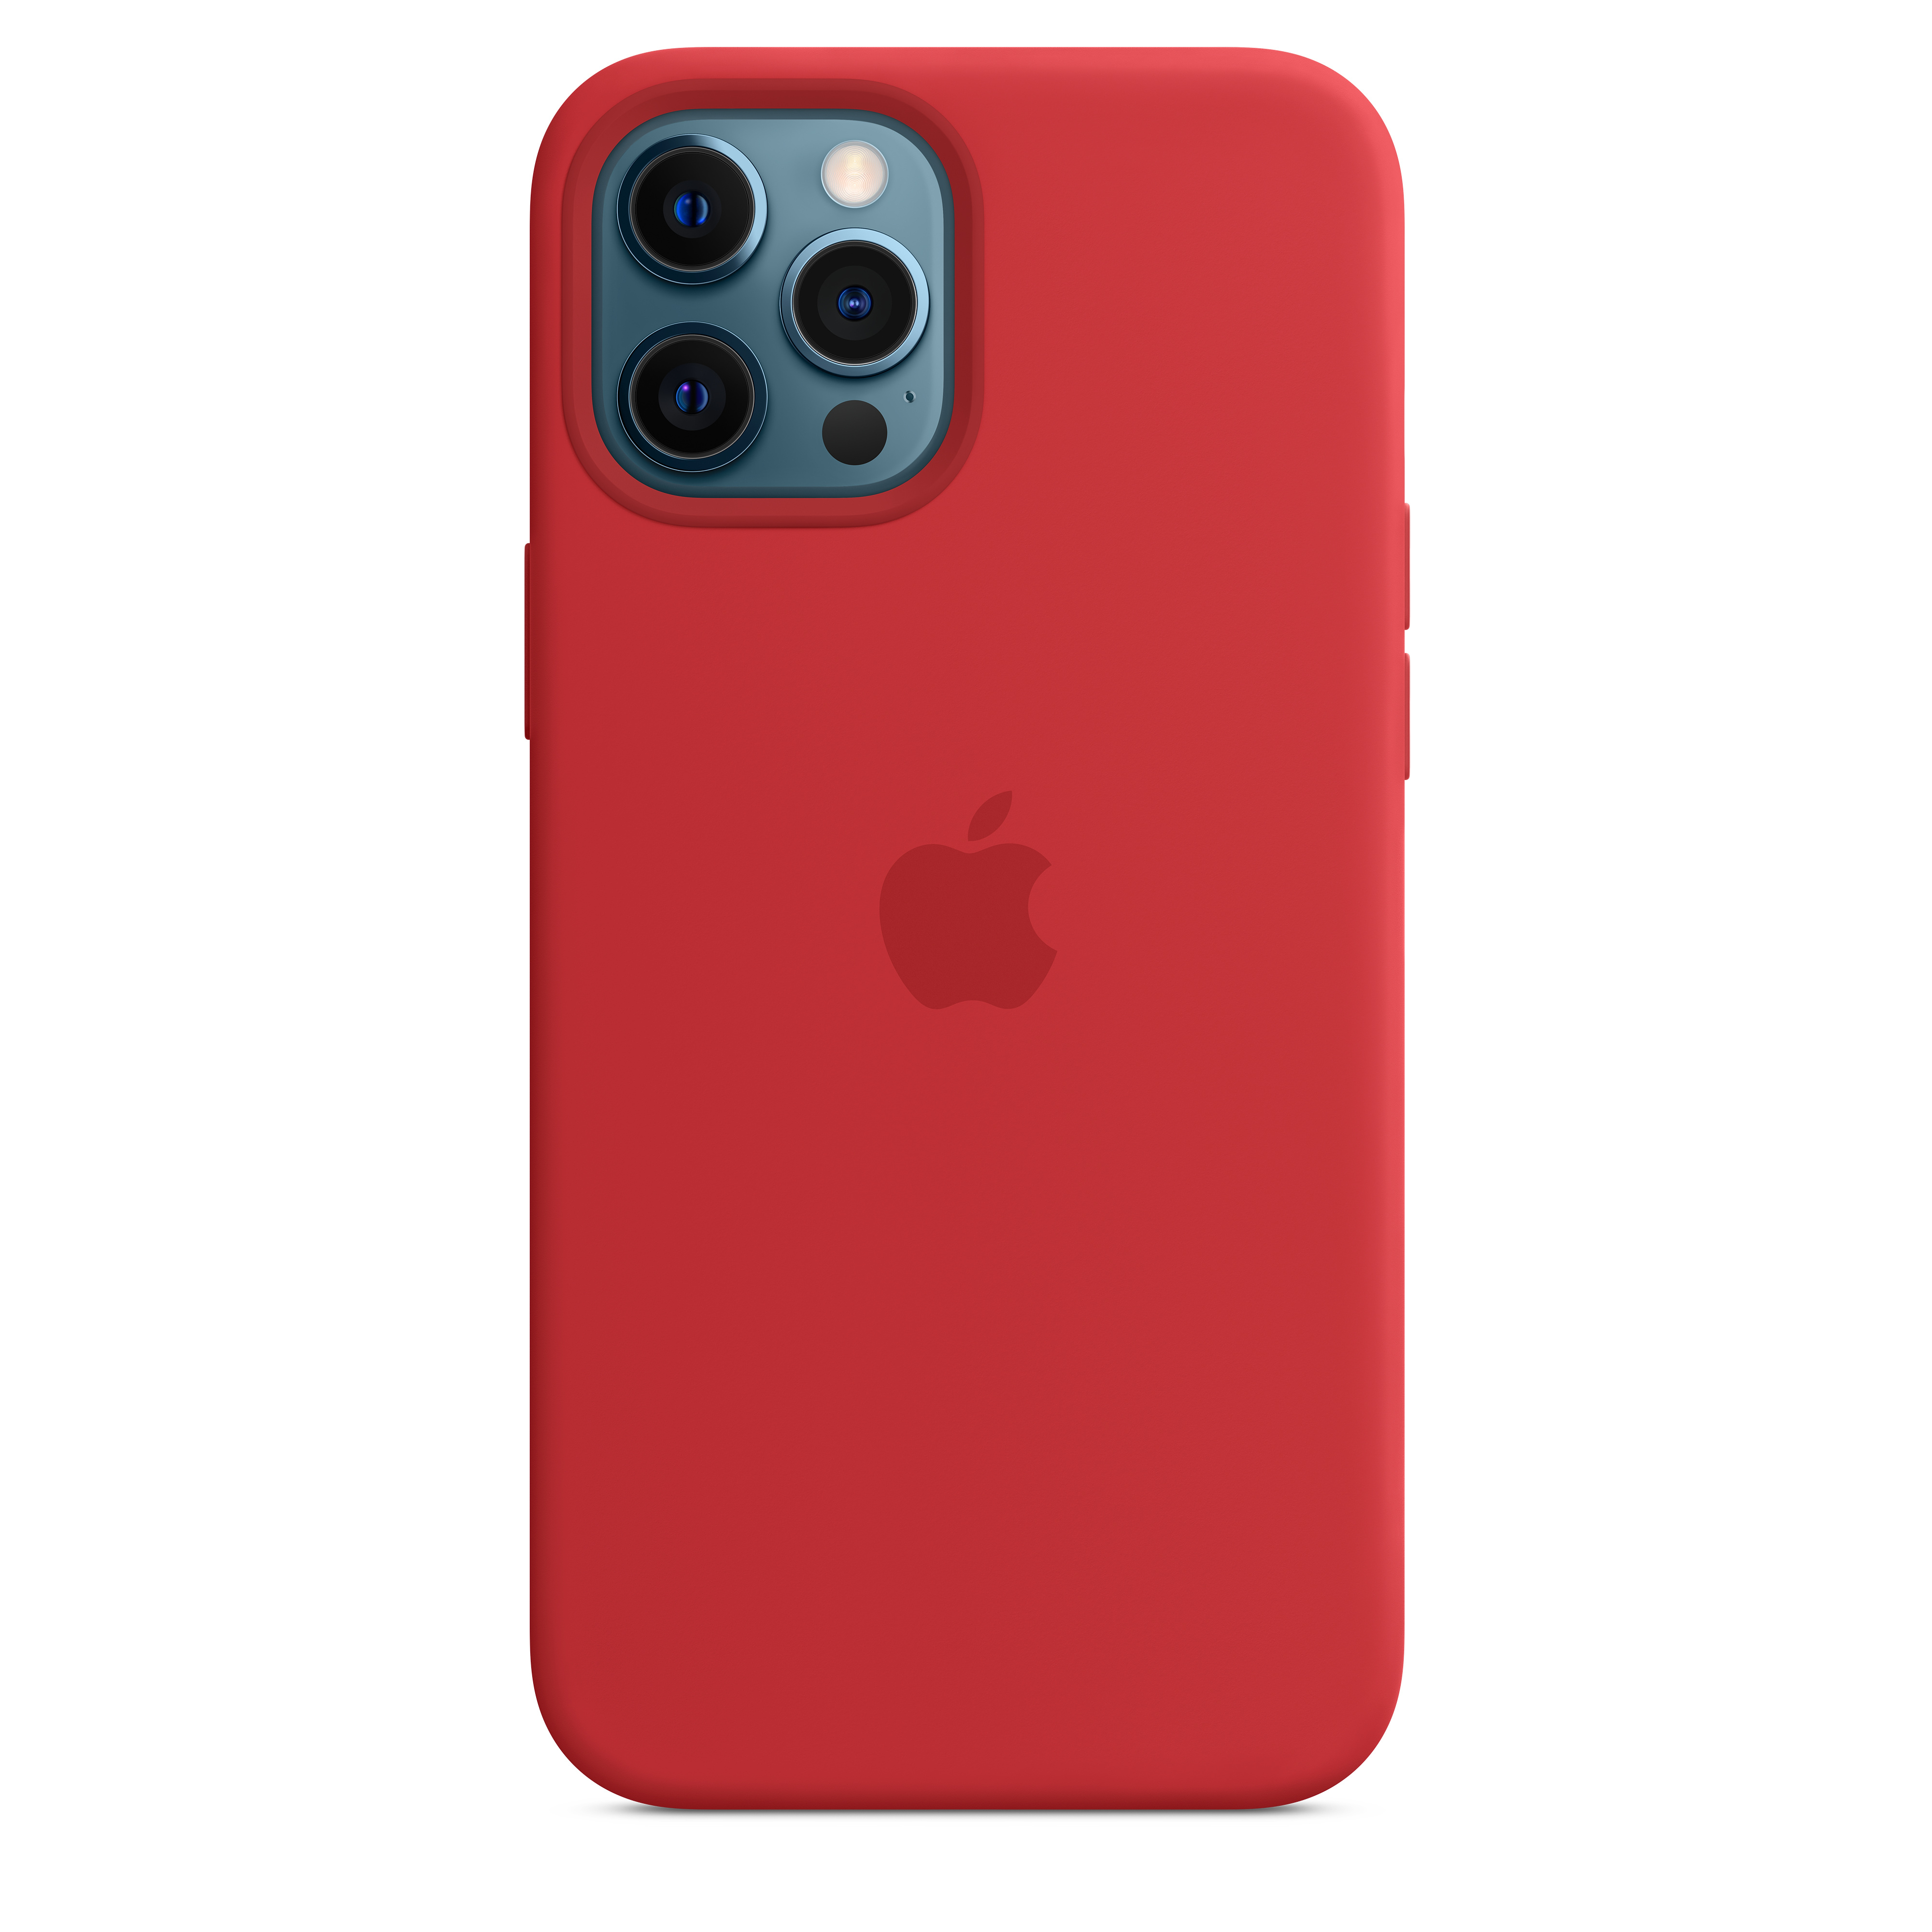 Apple - iPhone 12 Pro Max Silicone Case with MagSafe - (PRODUCT)RED Mhlf3zm/a